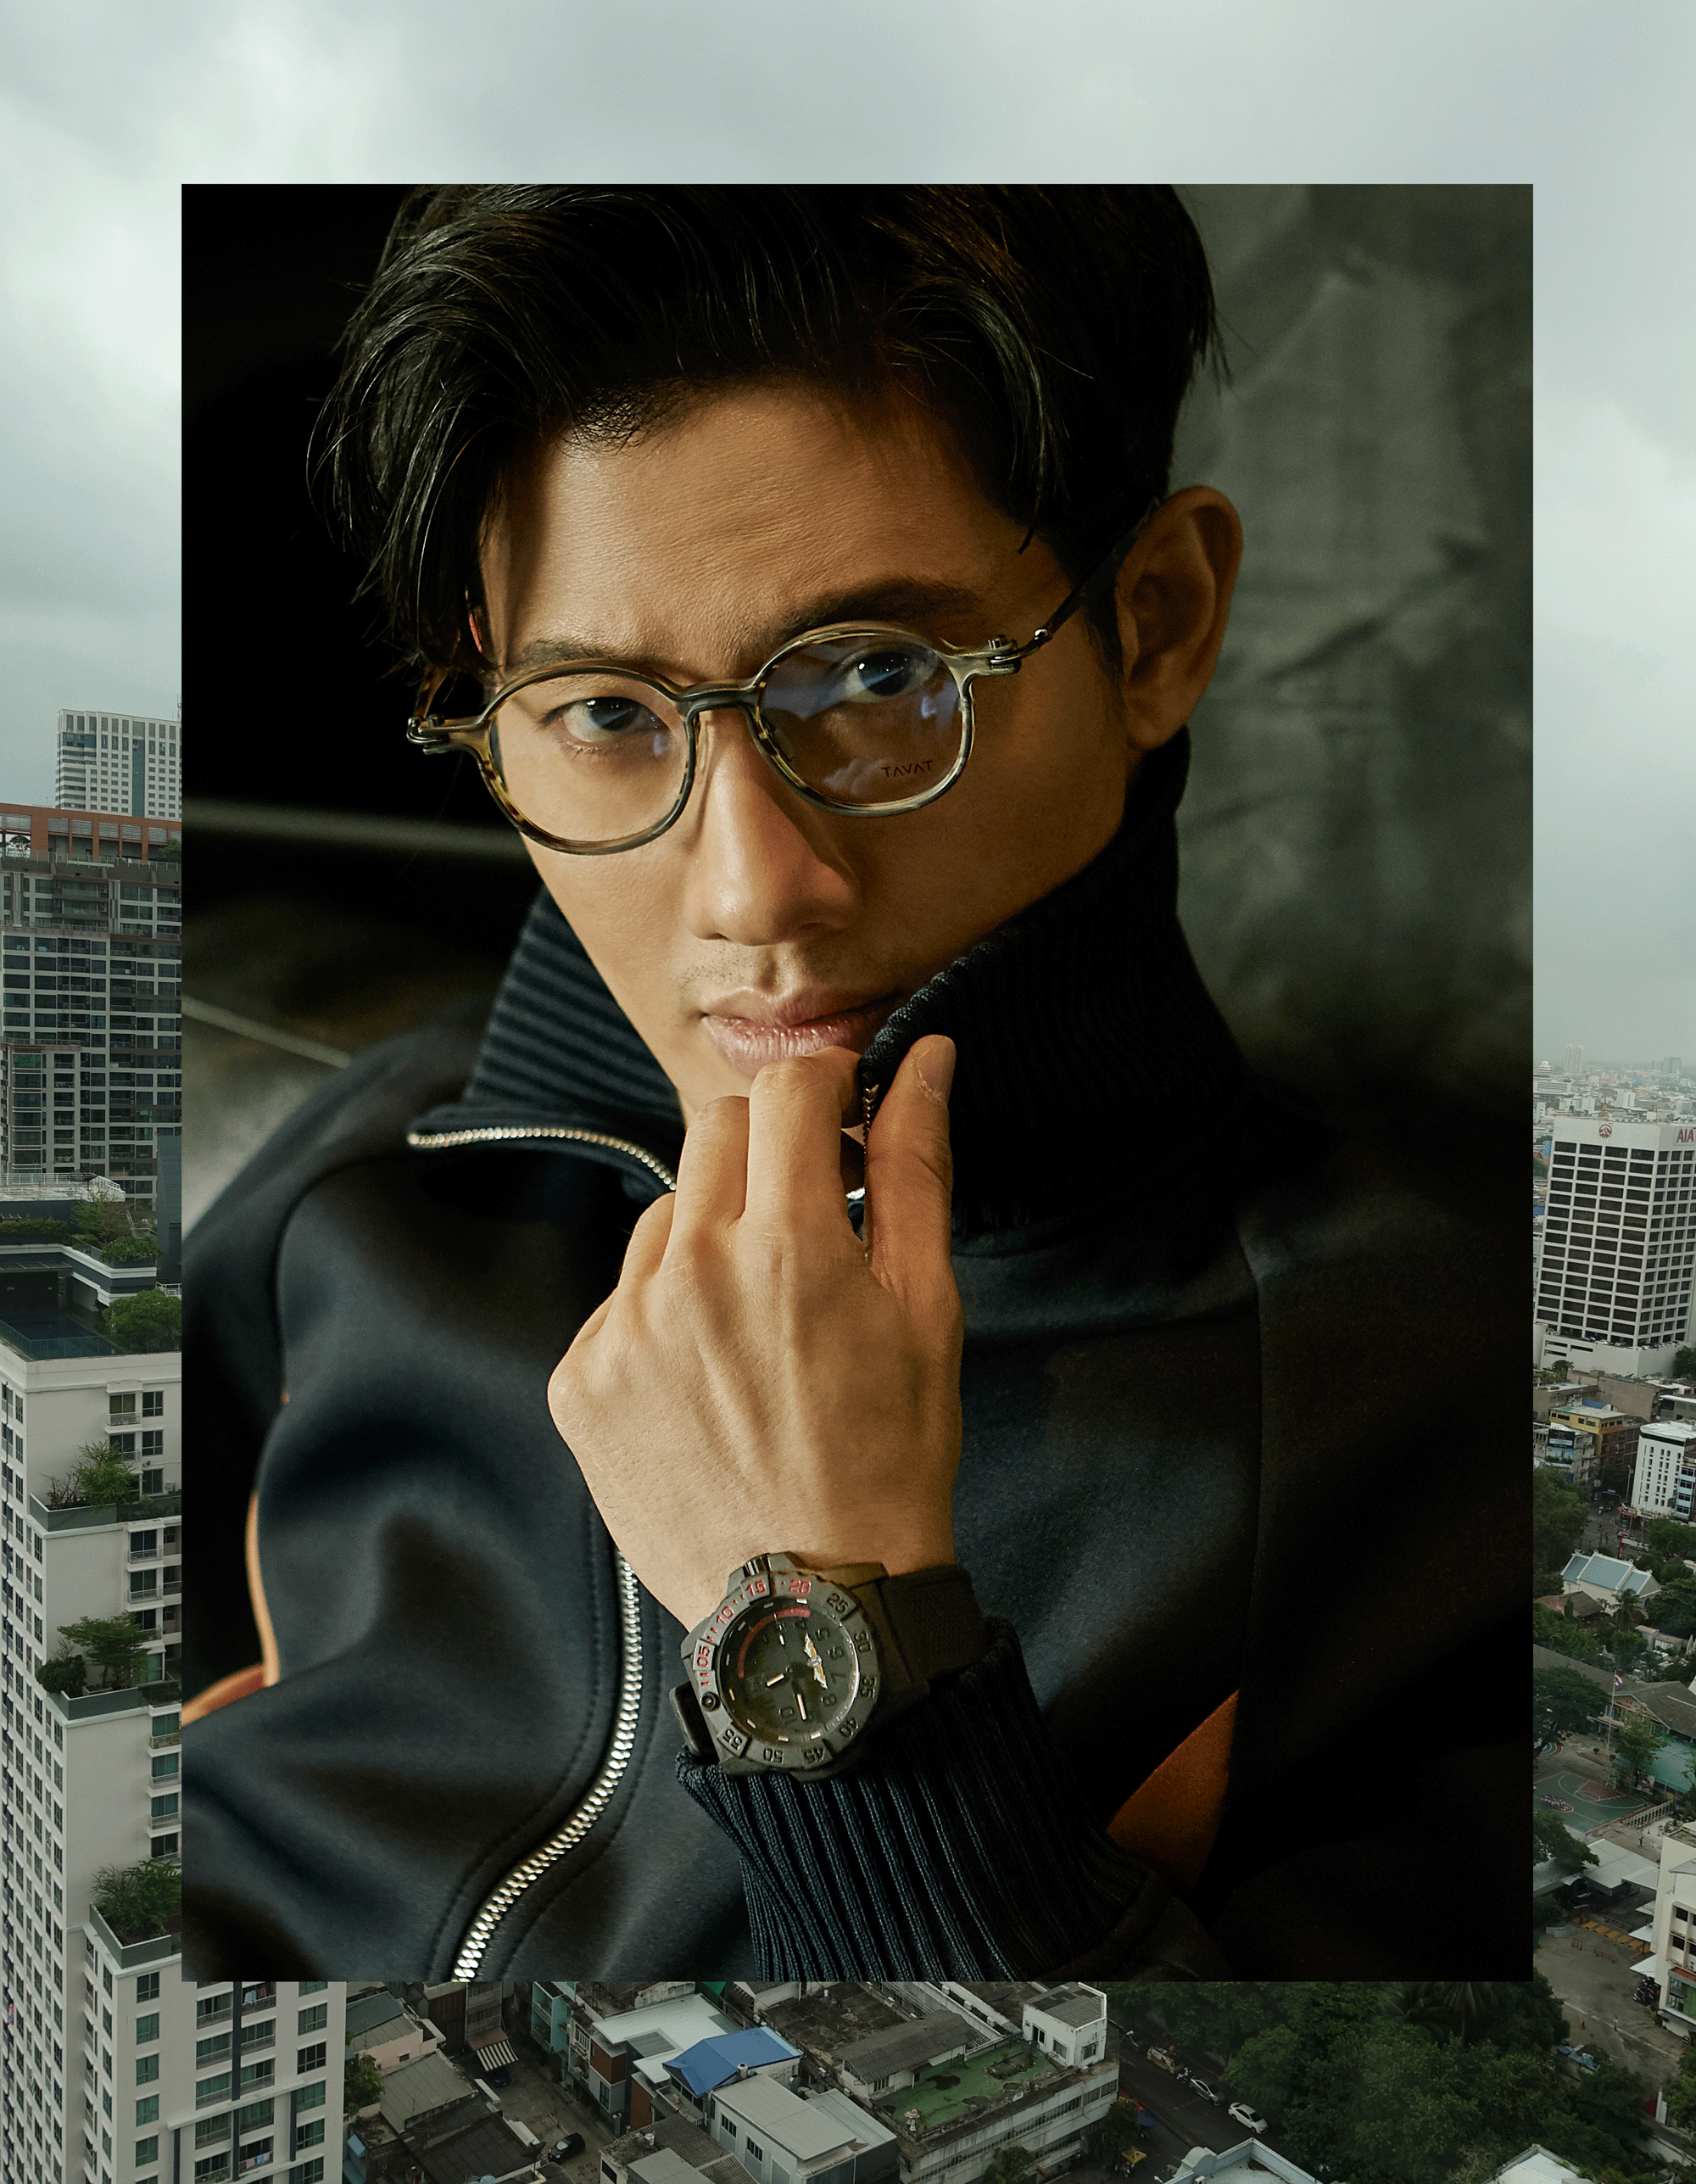 clothes : 3.1 Phillip Lim / eyeglasses : TAVAT  watch : LUMINOX Thai Navy SEAL LIMITED EDITION 999 pcs.